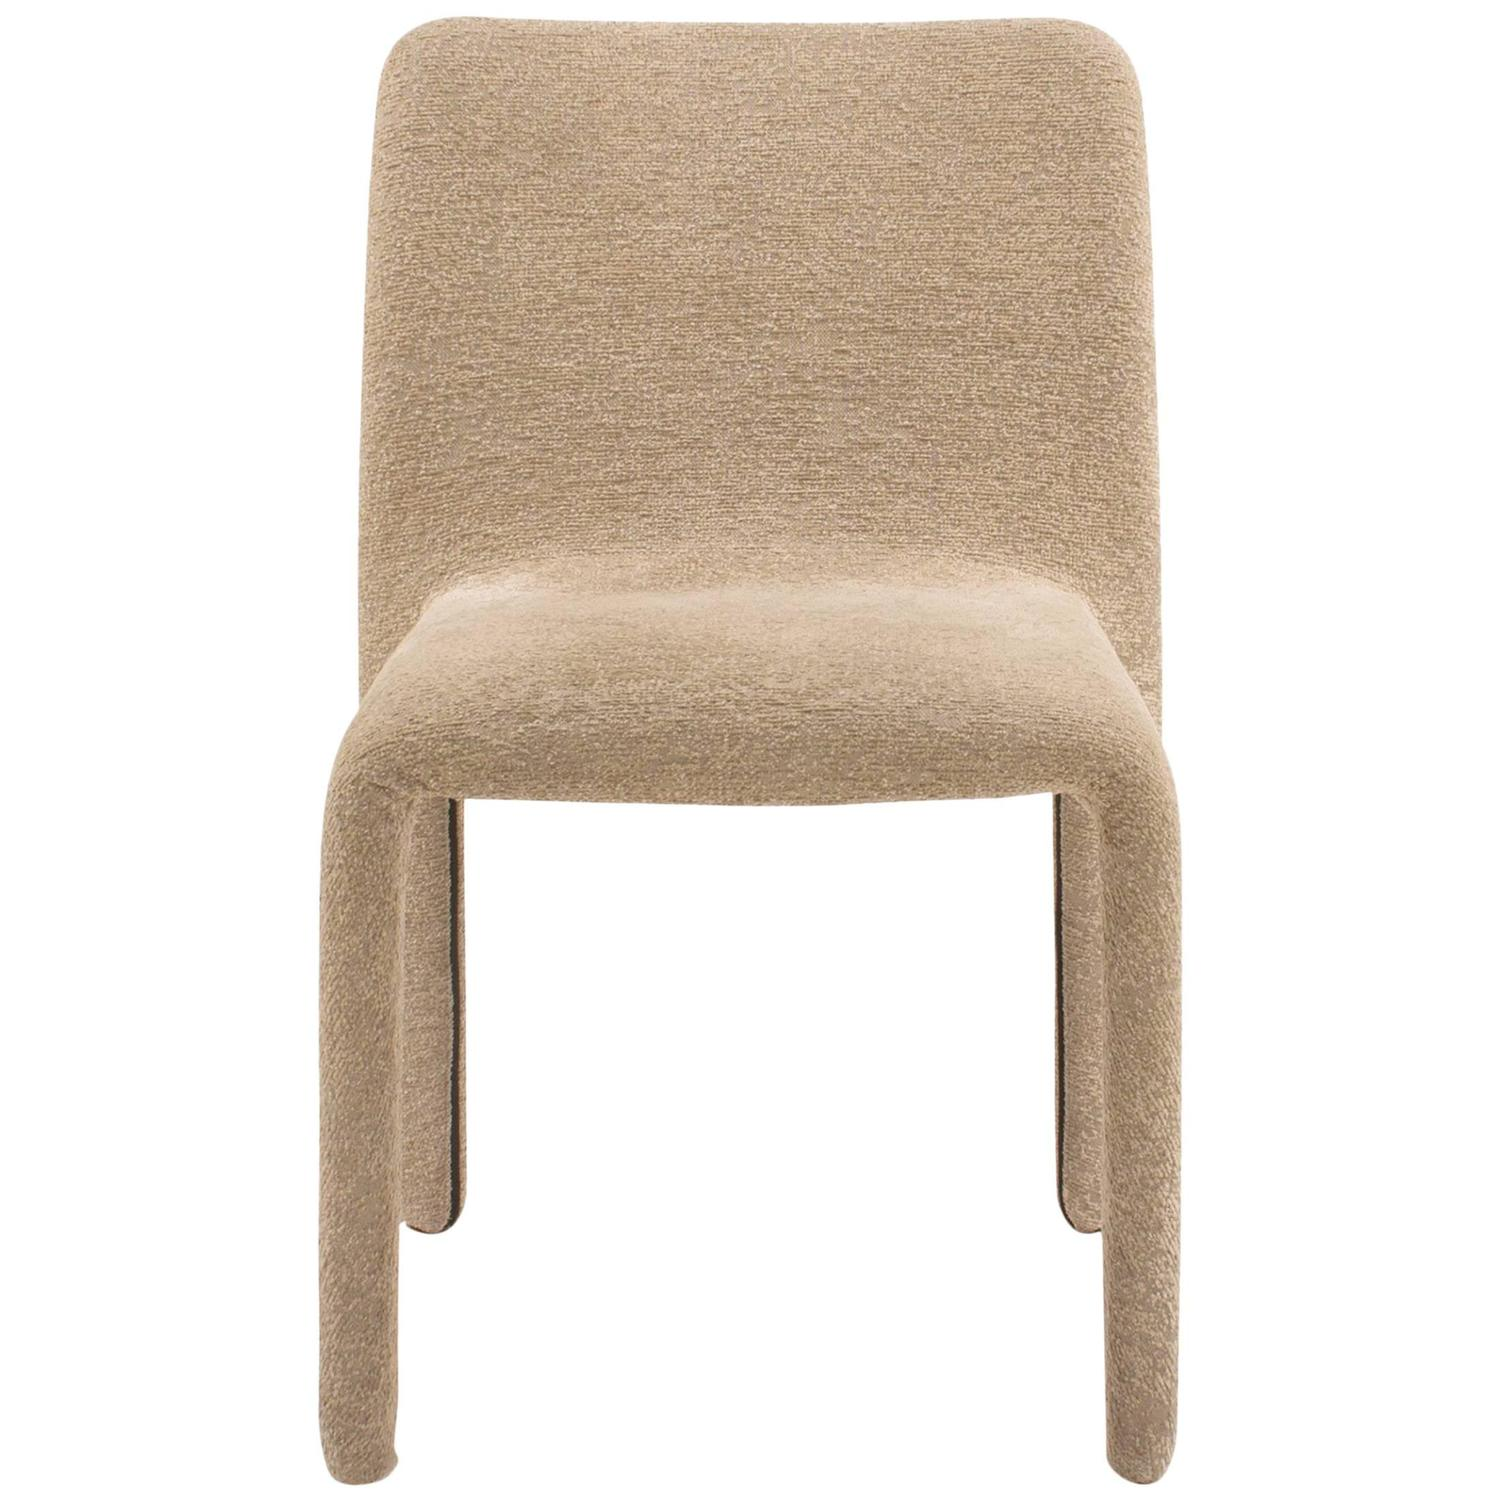 Upholstered Glove UP Dining Chair by Patricia Urquiola for Molteni